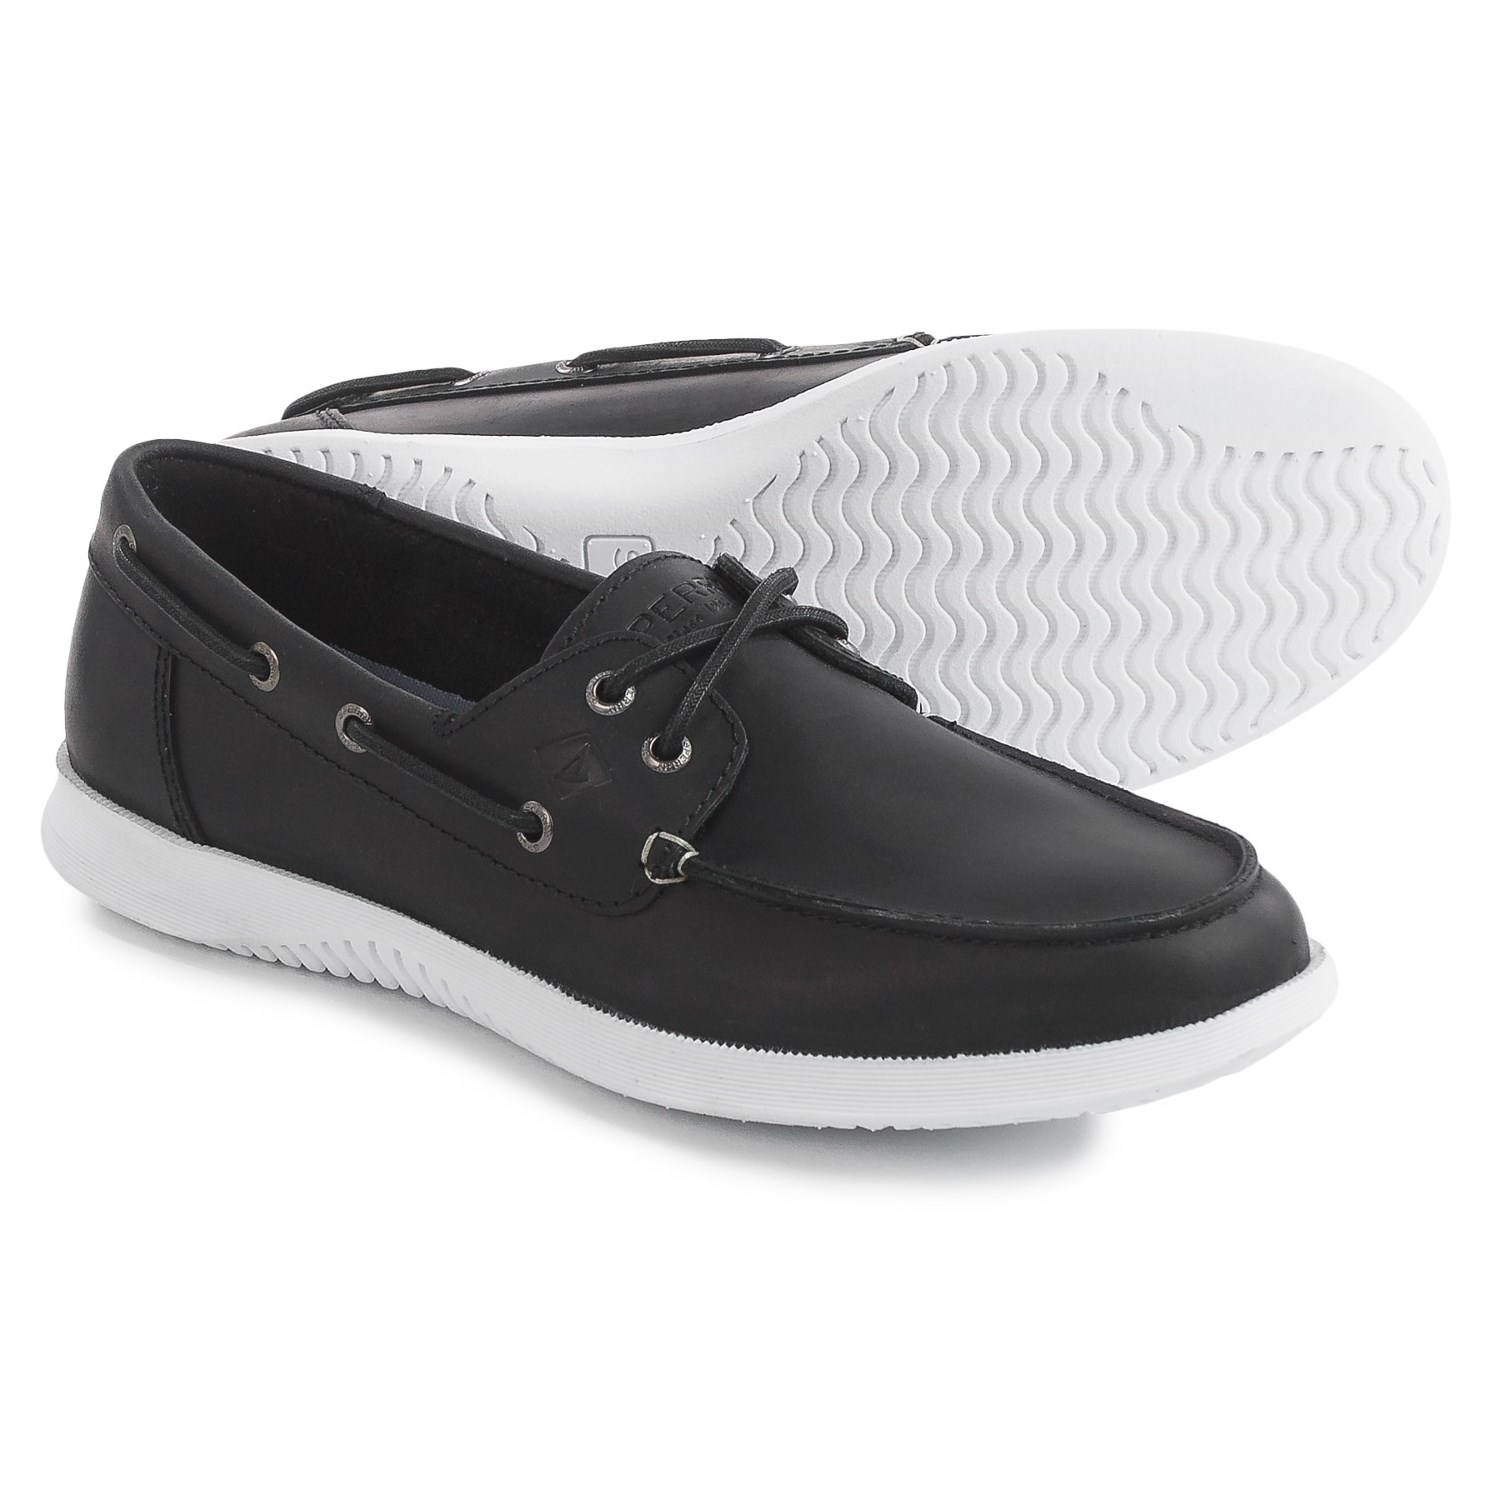 Boat Shoes For Men The boat shoe was created in by Paul Sperry. Sperry sought to design a shoe that would successfully grip the deck of a boat without leaving scuff marks behind.